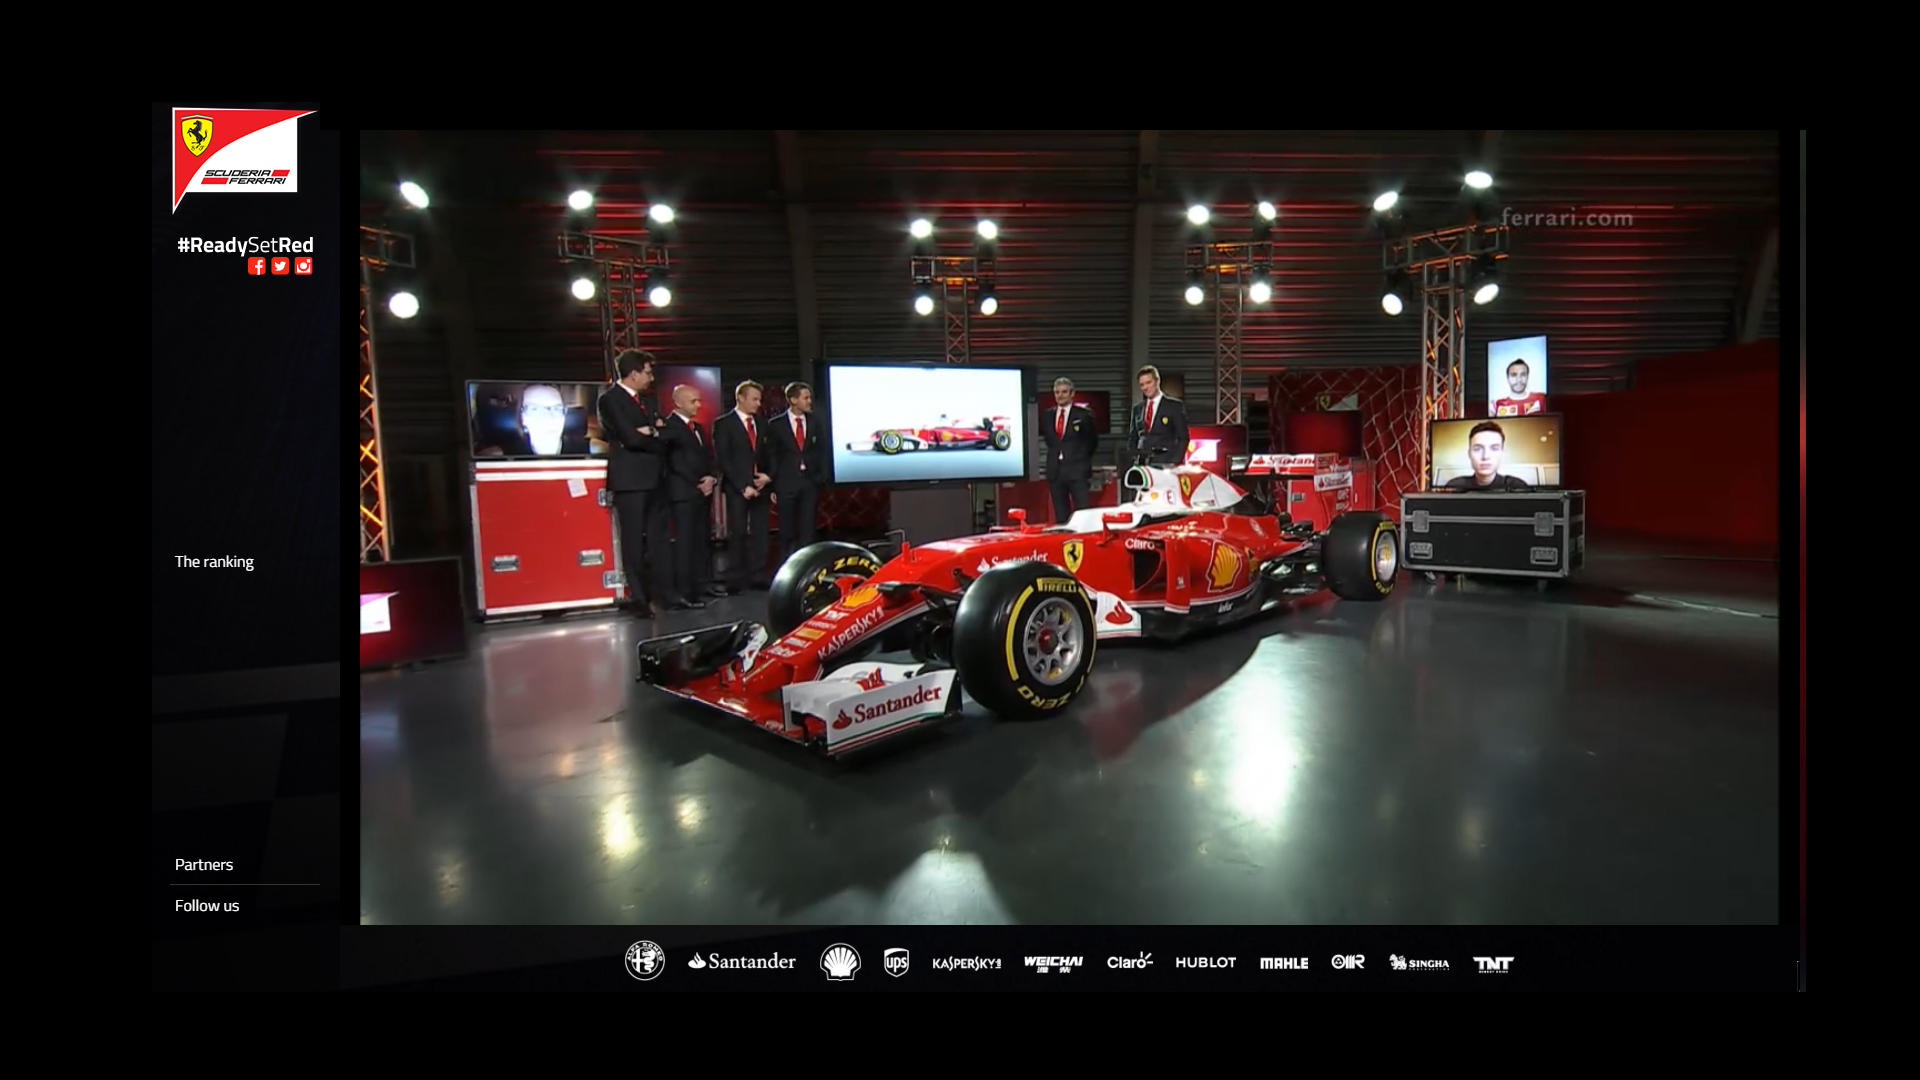 Team show via livestream Scuderia Ferrari ReadySetRed SF16-H F1 2016